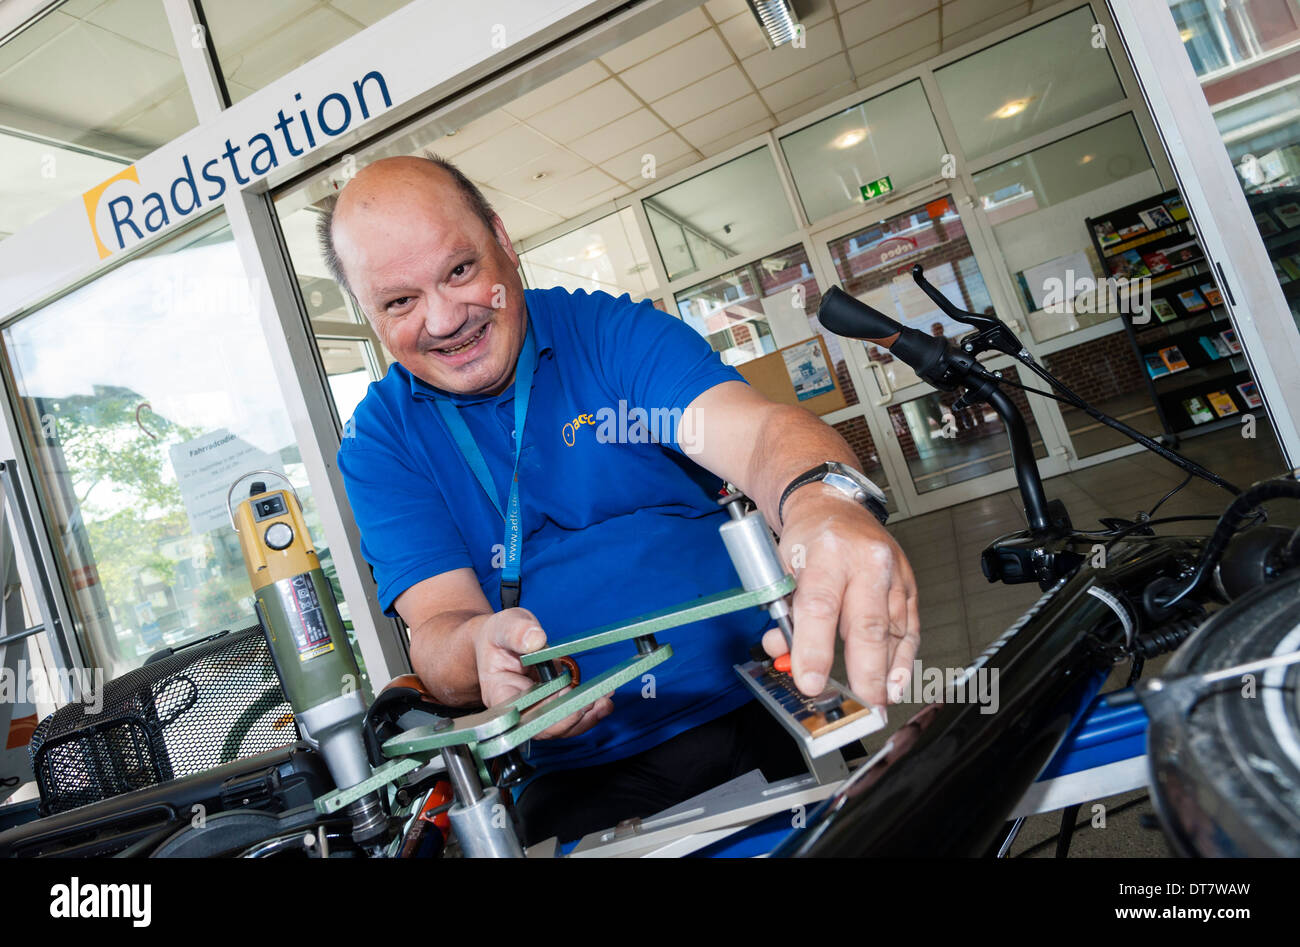 A technician of the ADFC bikers club encodes a bike. - Stock Image